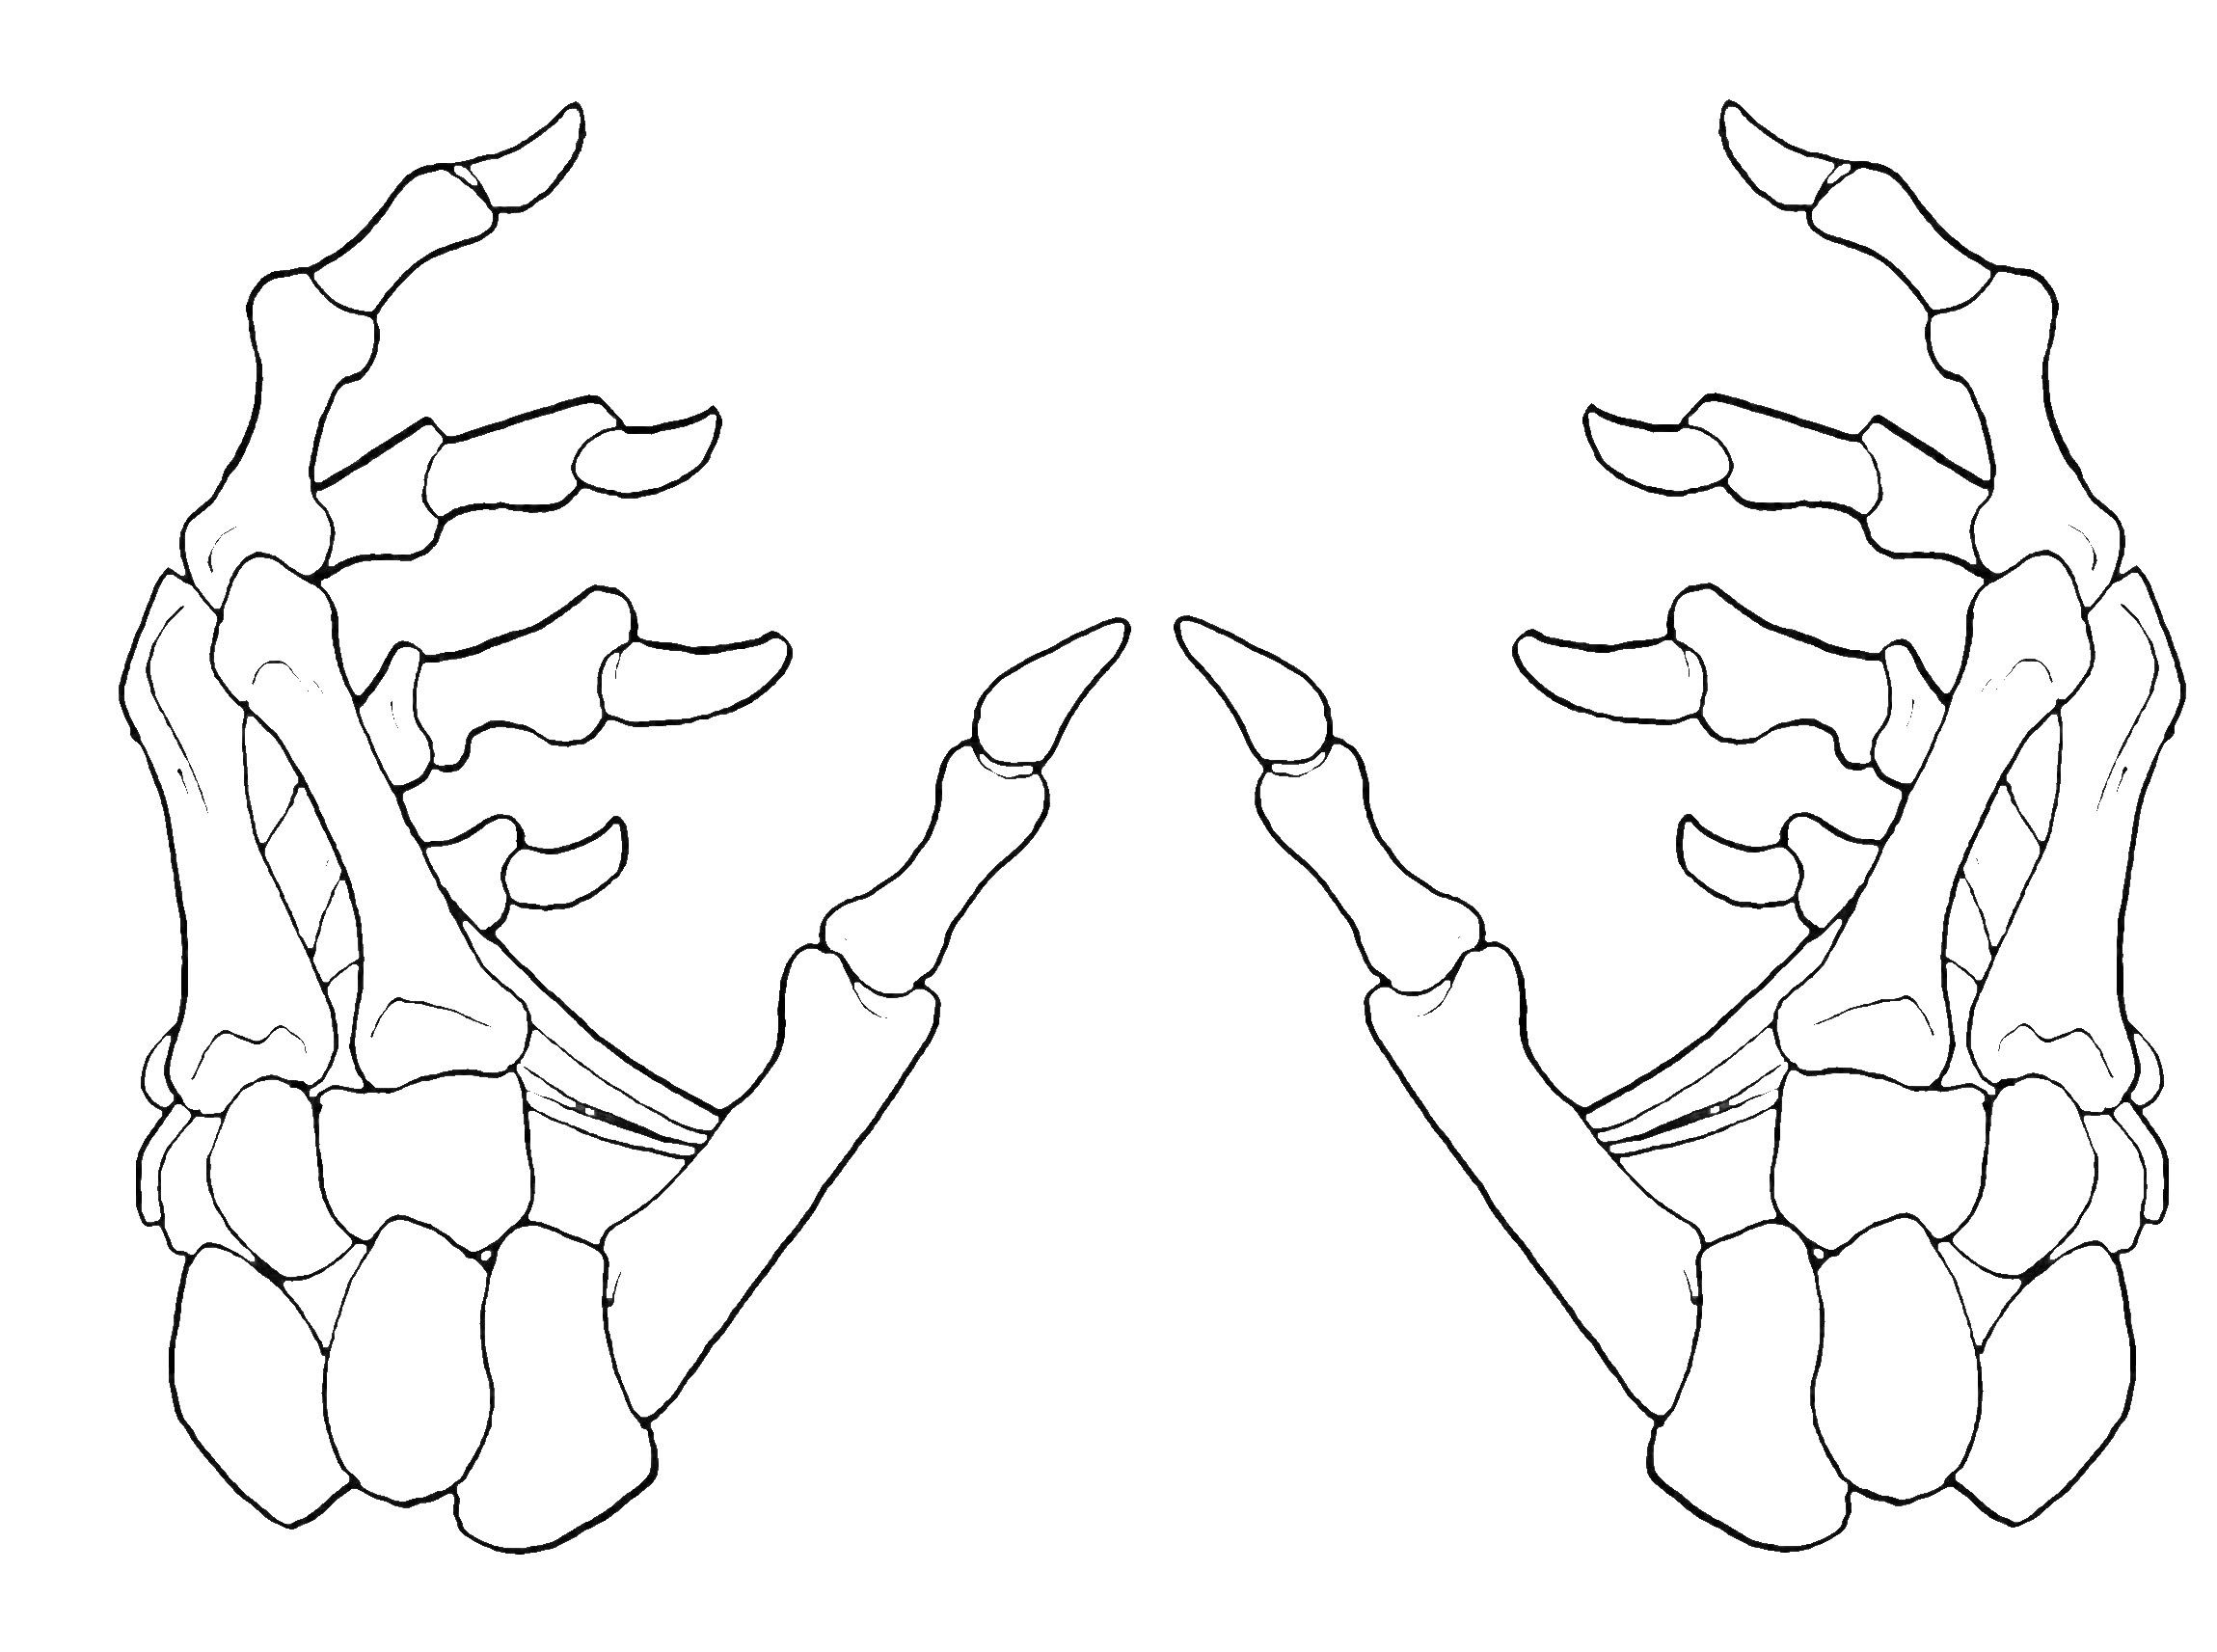 Tattoo design 1 Skeleton hands drawing, Skeleton hand